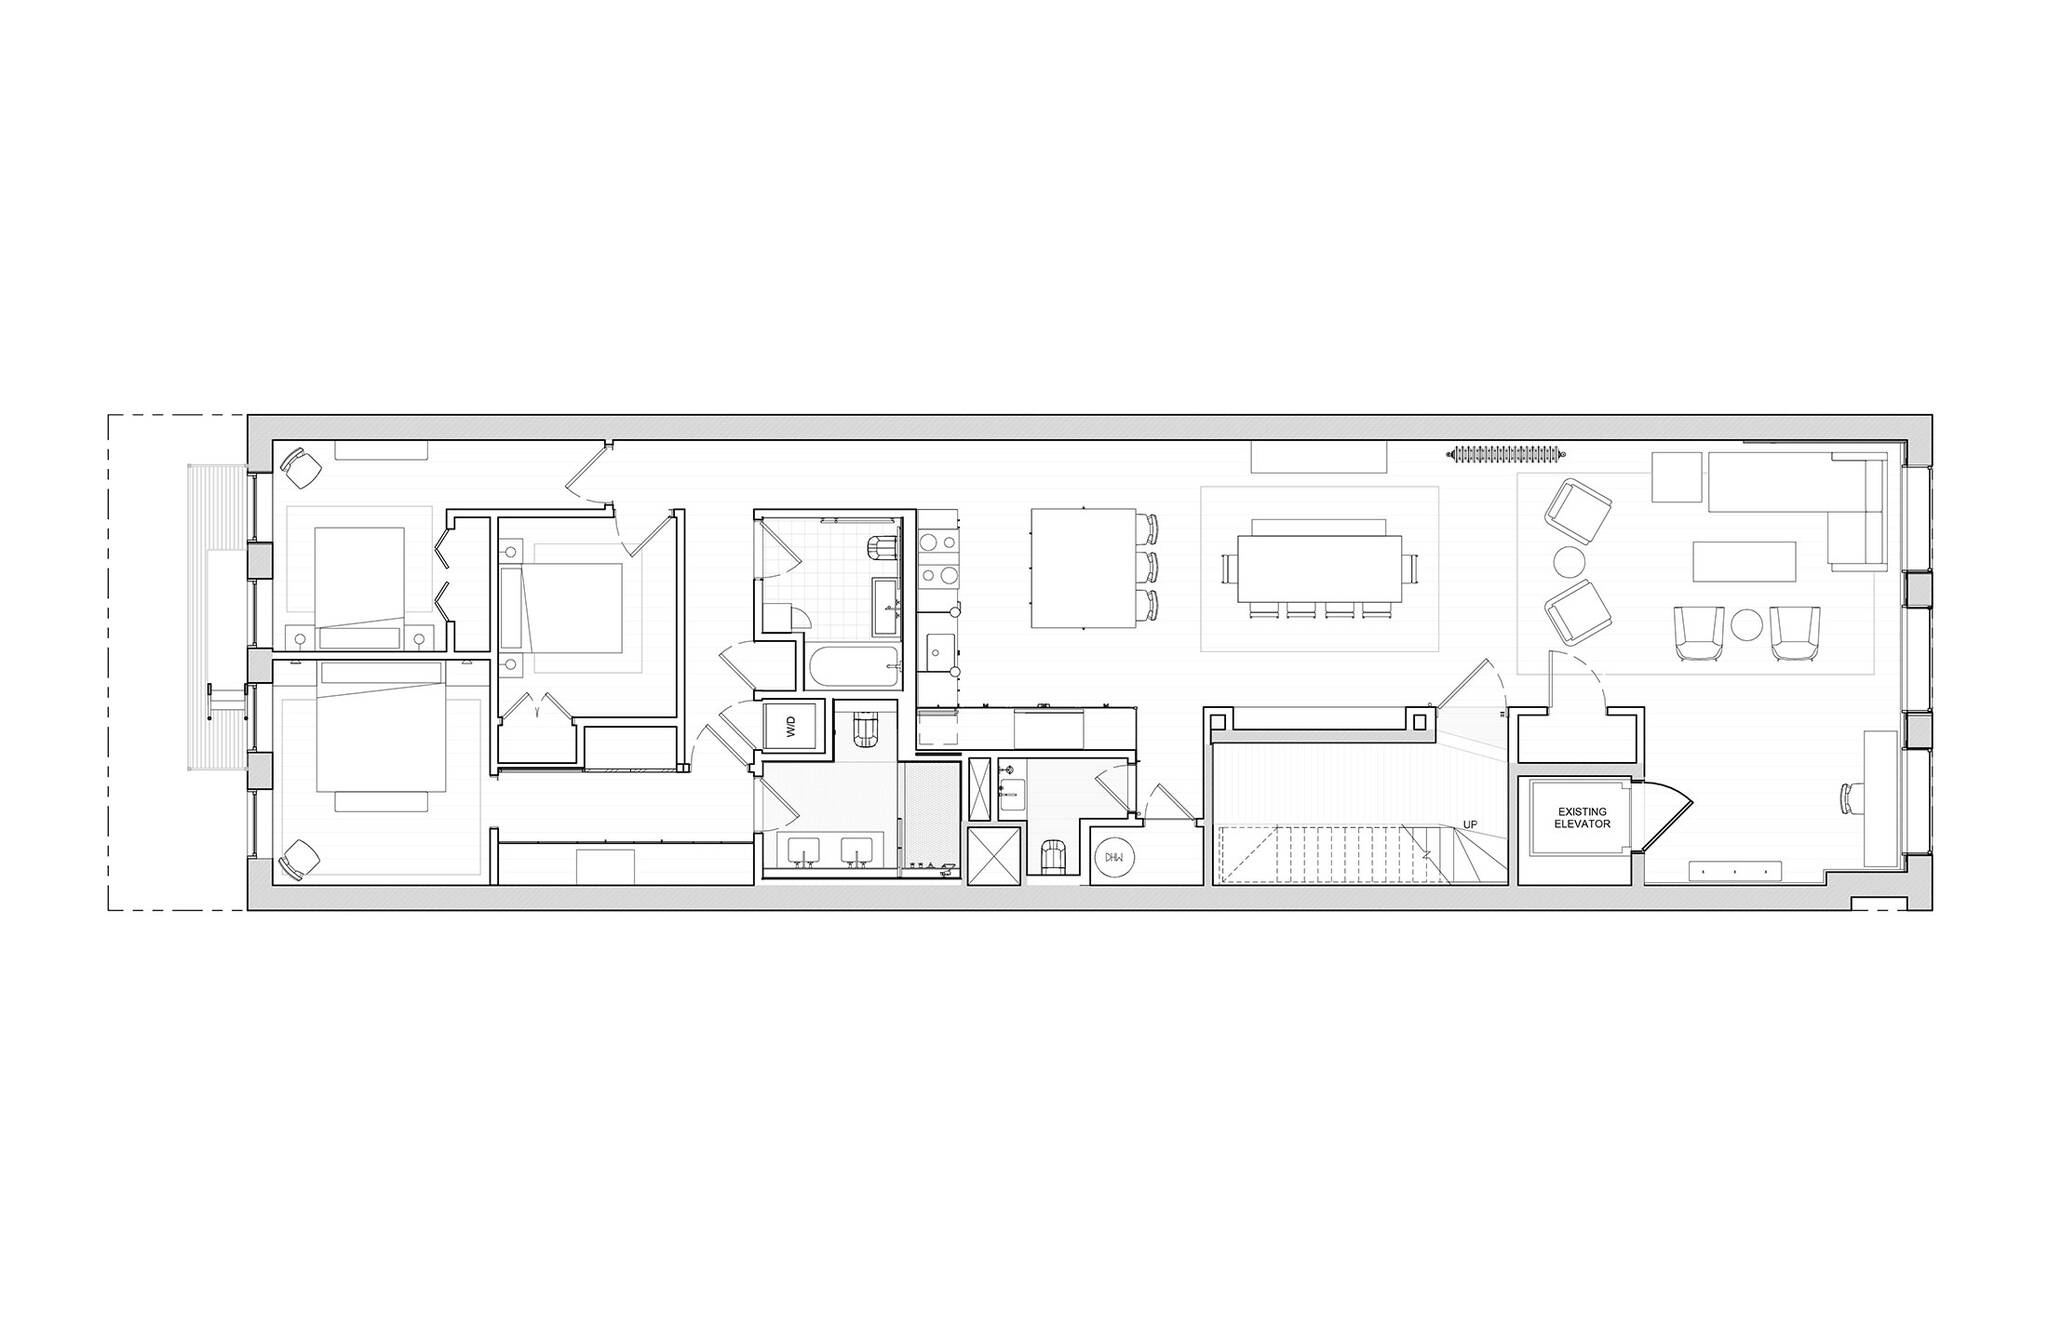 Site plan of the Residence renovation project on the East Side of Manhattan, New York City designed by the architecture studio Danny Forster & Architecture